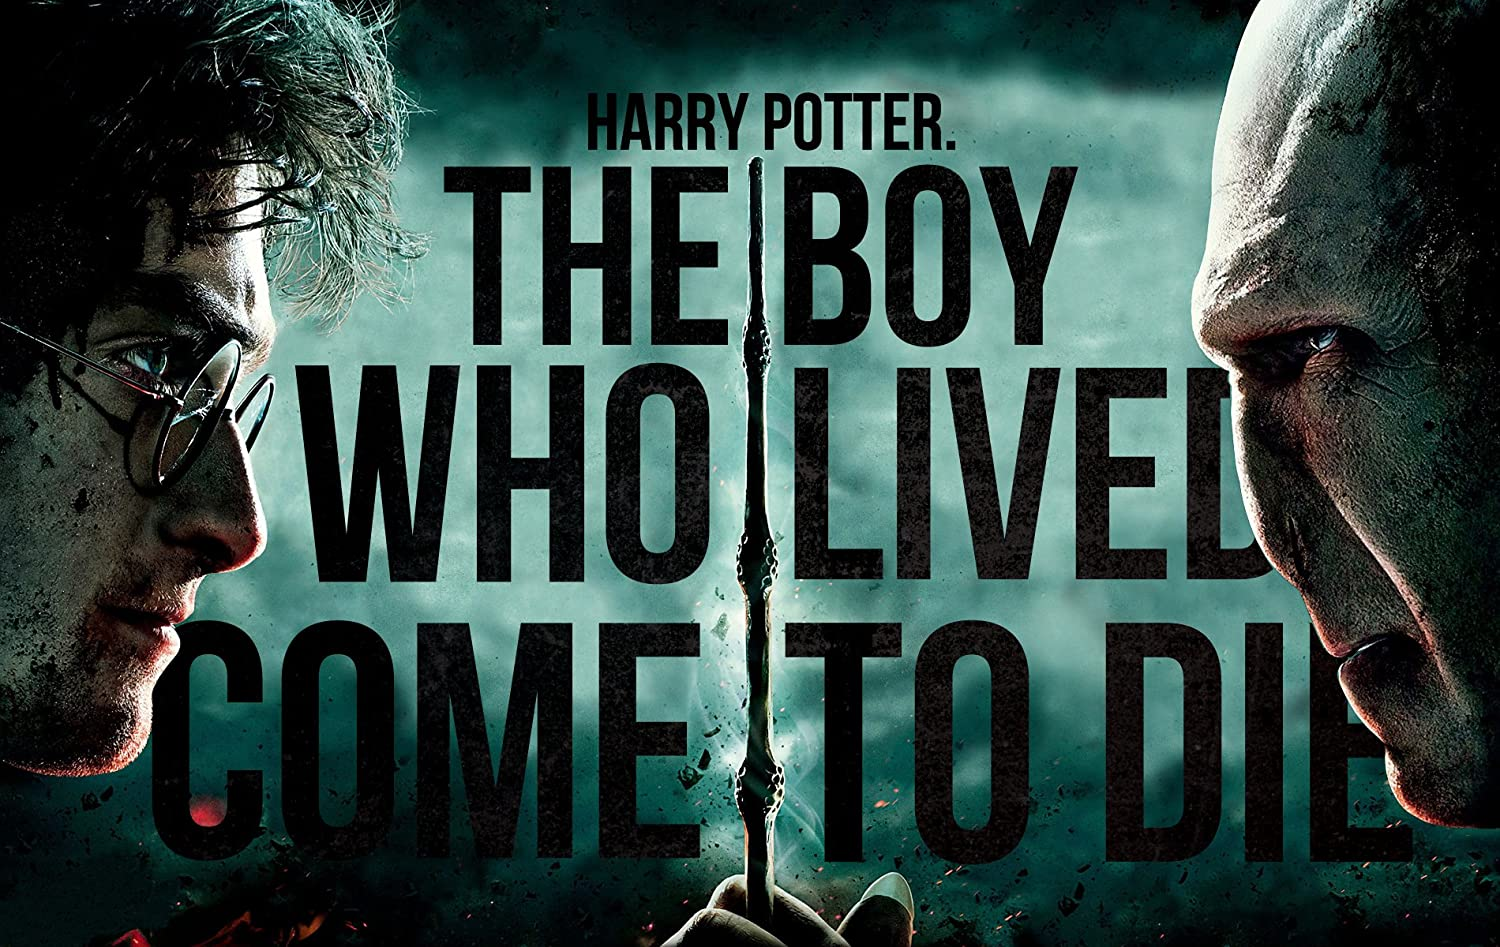 Posterhouzz Movie Harry Potter And The Deathly Hallows Part 2